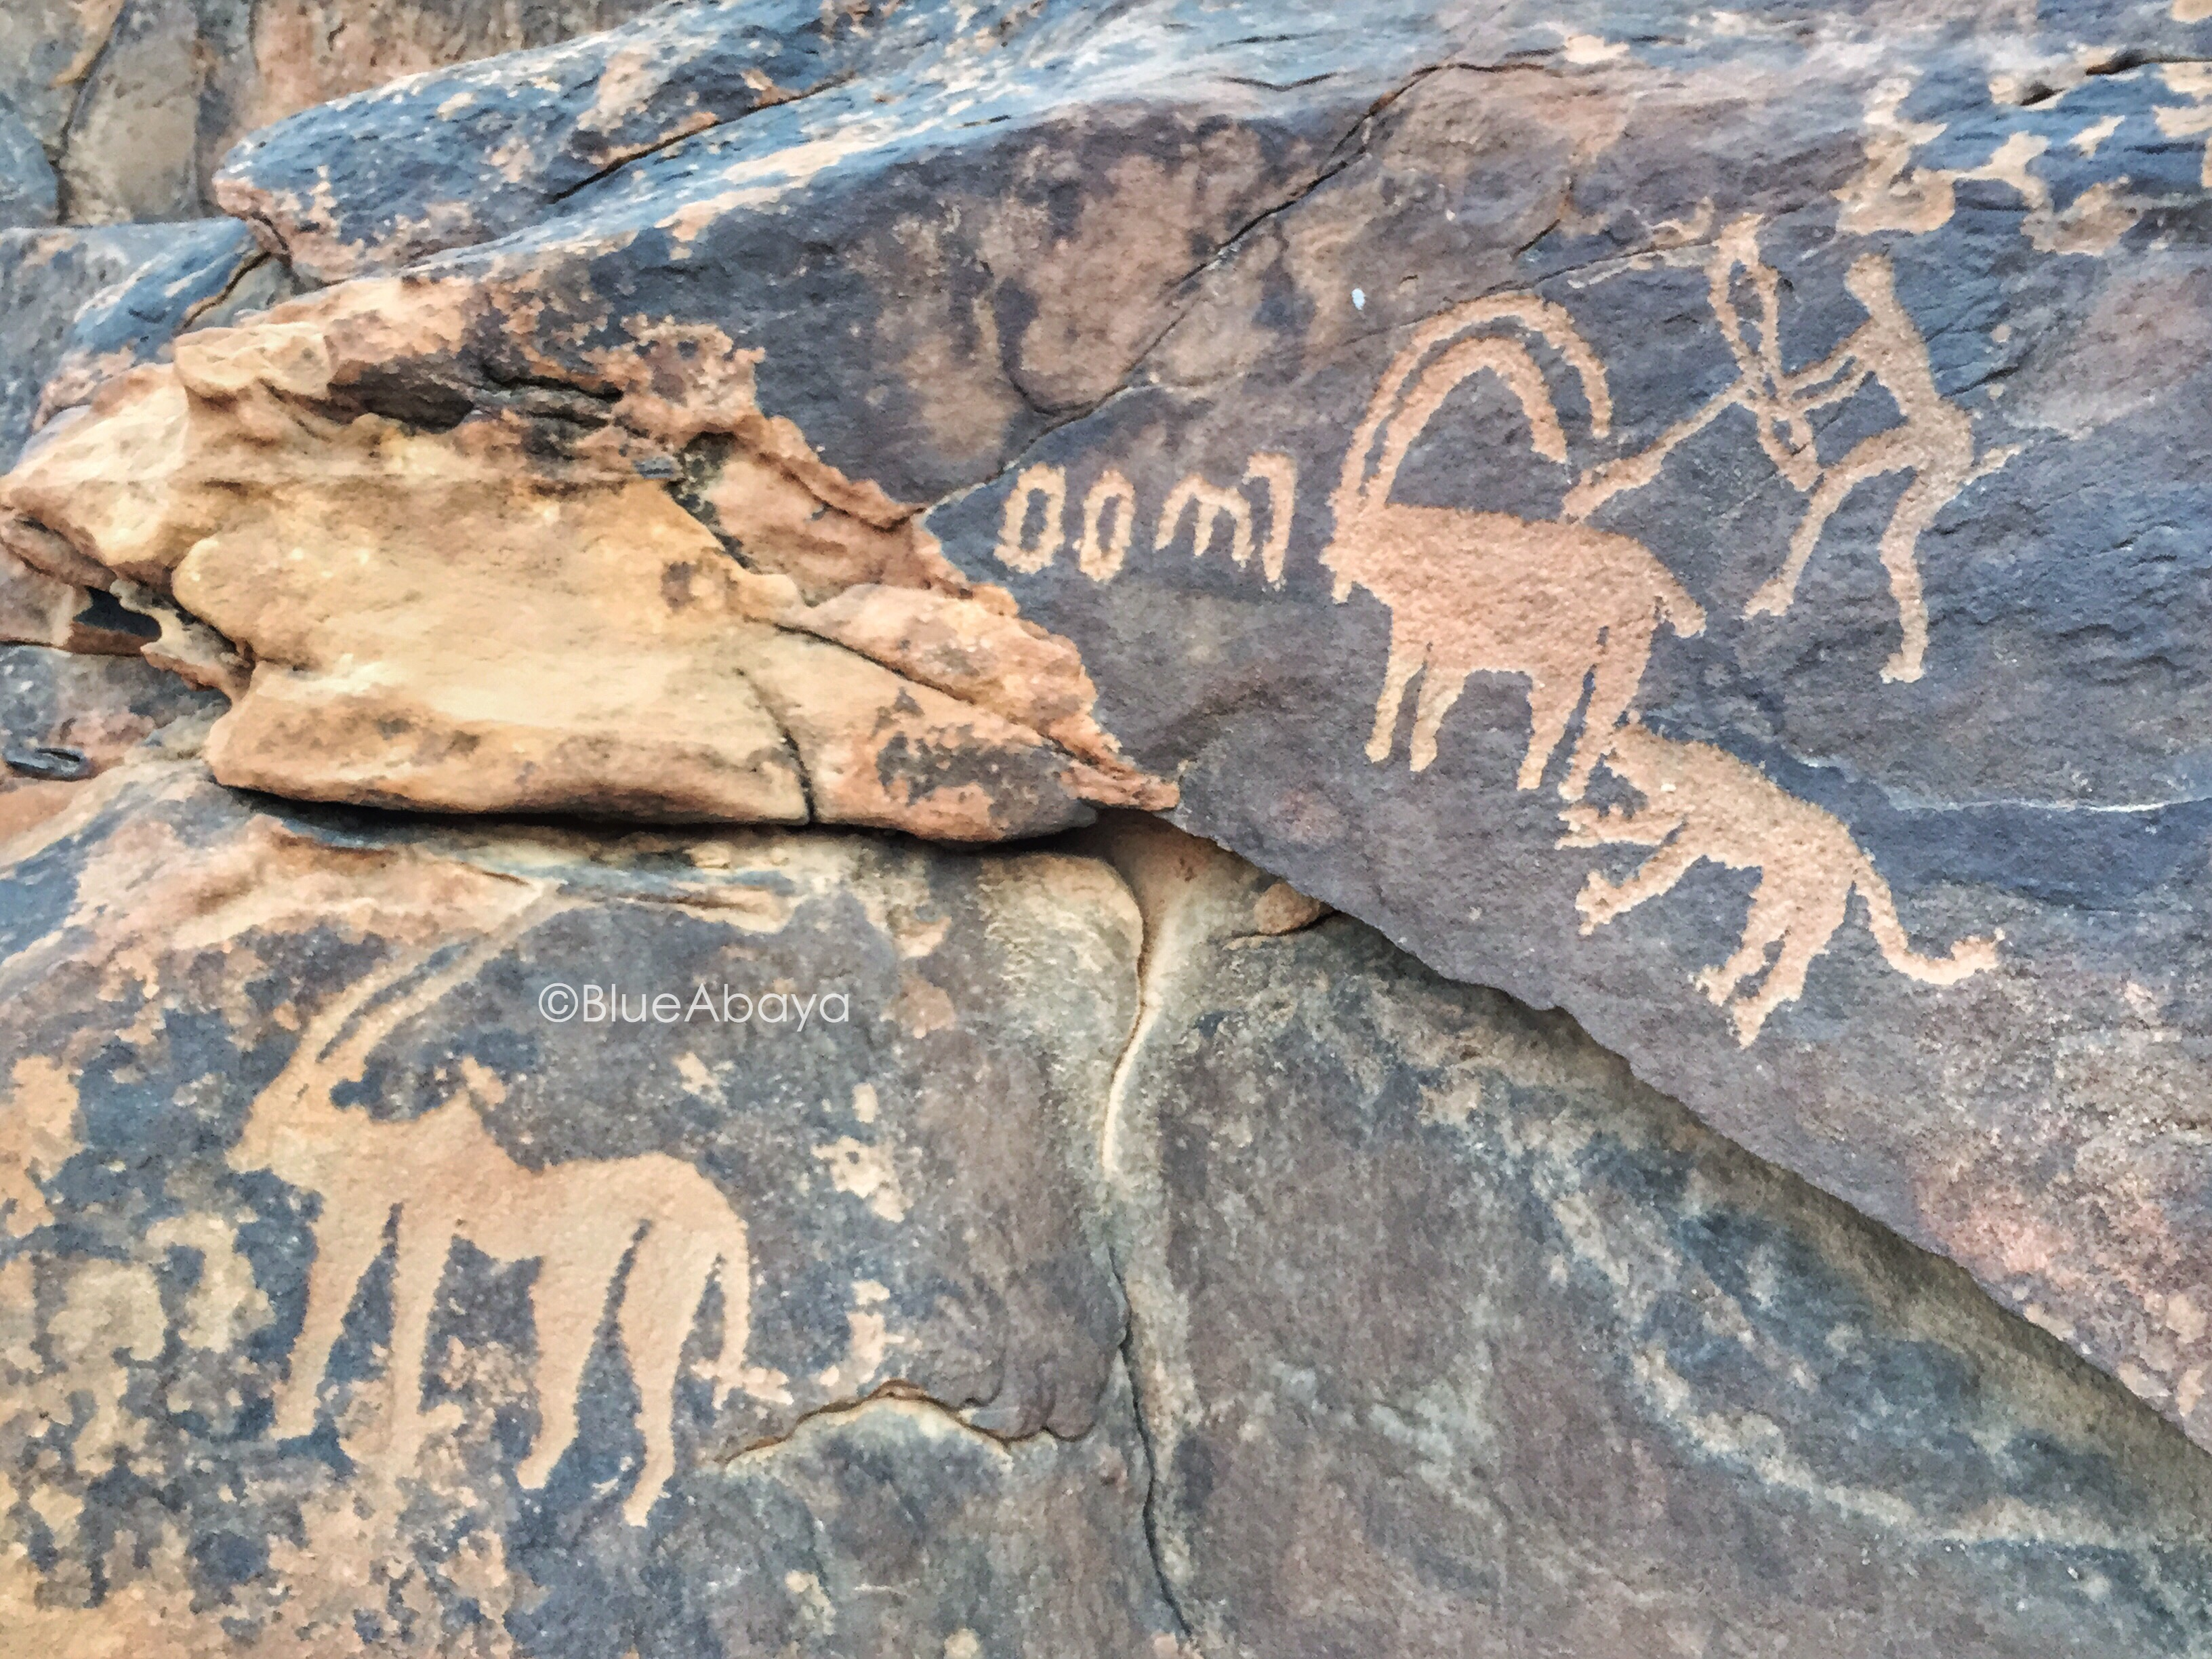 Wanderlust in saudi arabia ha il archeological rock art